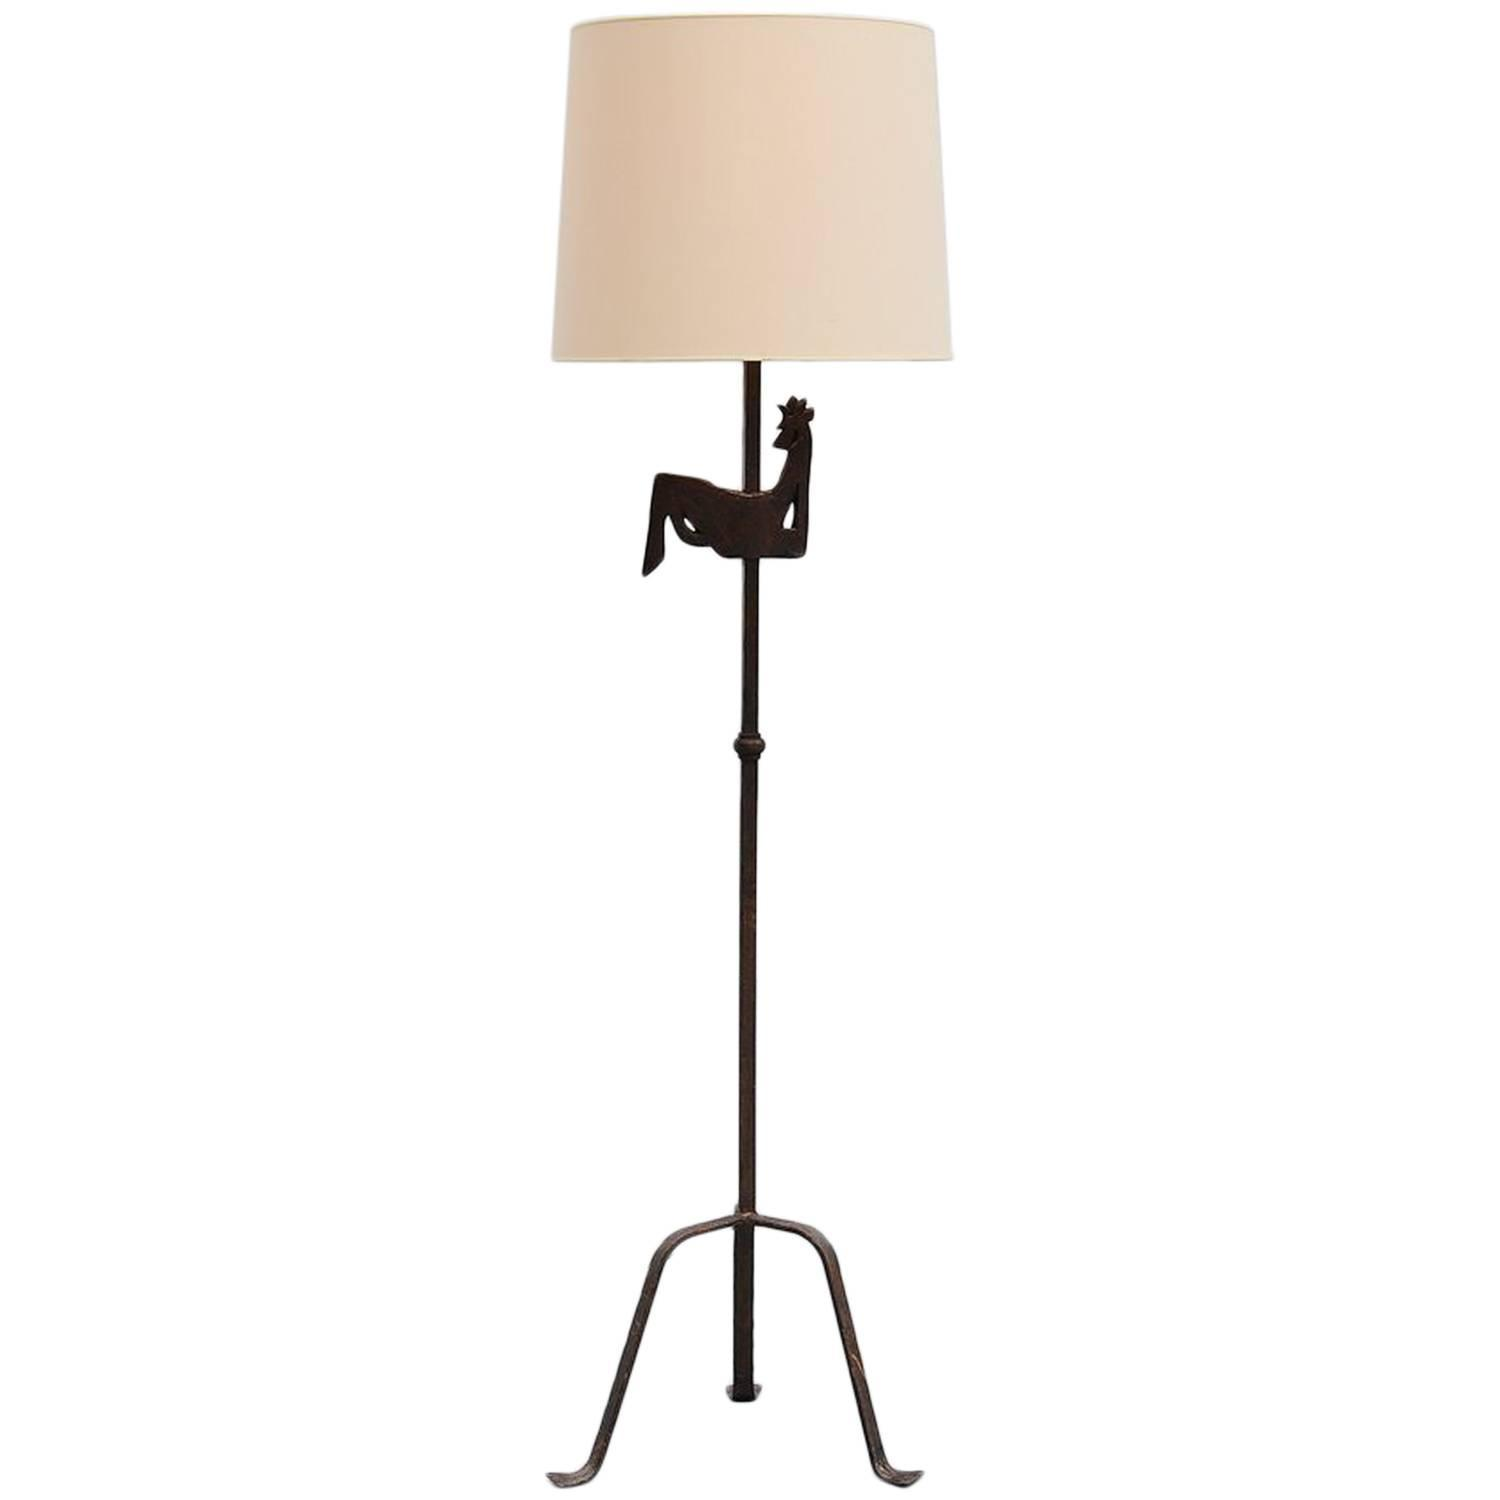 wrought iron rooster floor lamp atelier morolles france. Black Bedroom Furniture Sets. Home Design Ideas